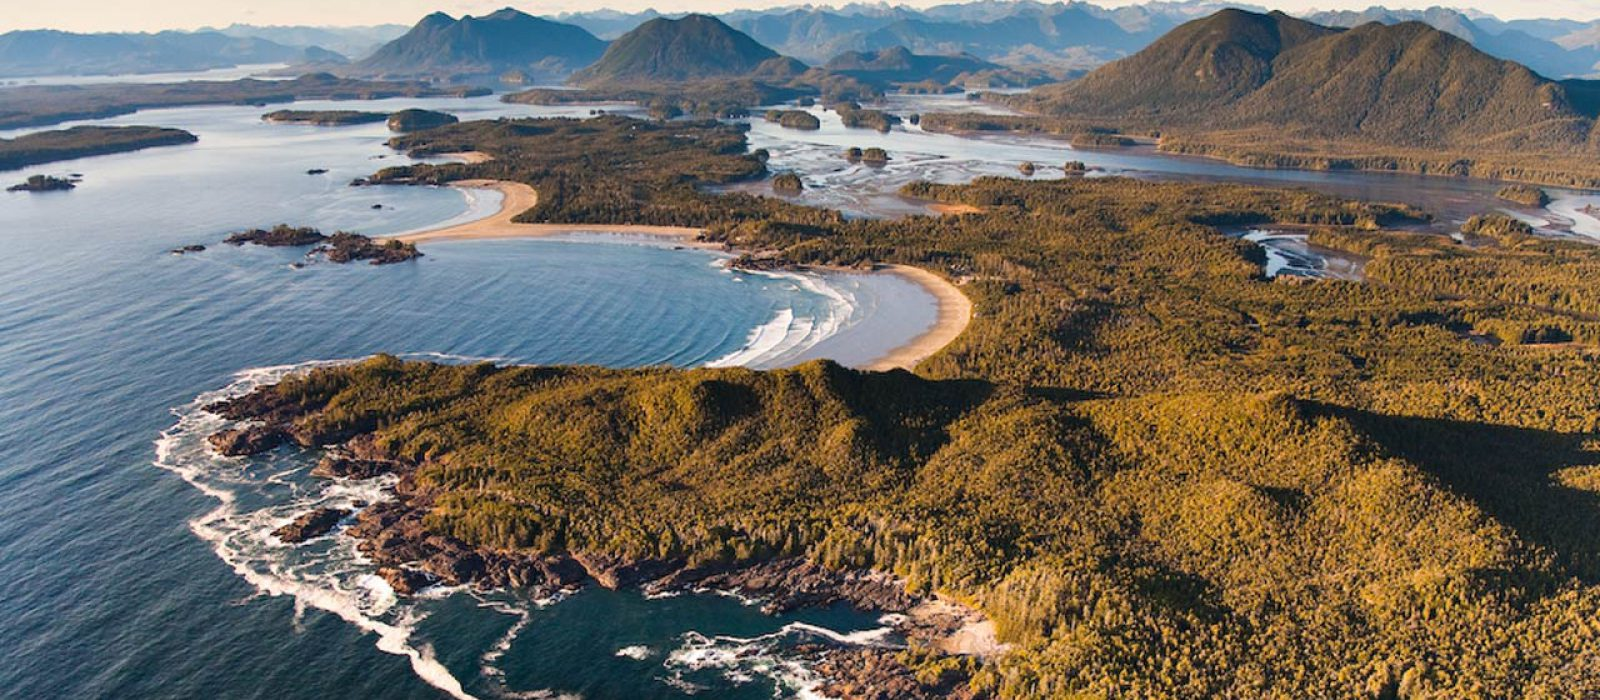 Aerial view of the Pacific Rim and Tofino area